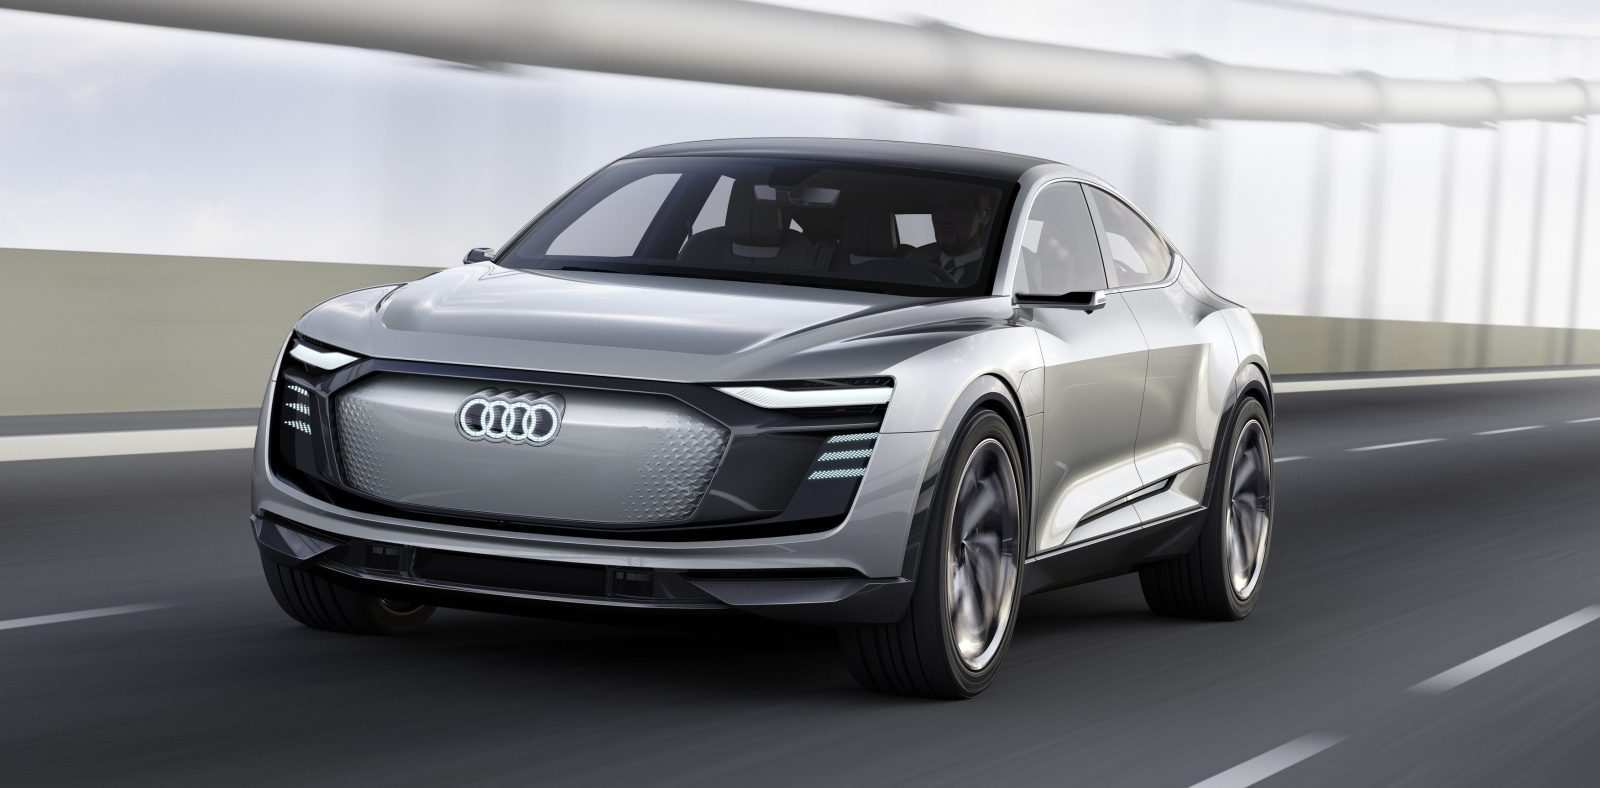 57 Great Audi Electric Cars 2020 Style with Audi Electric Cars 2020